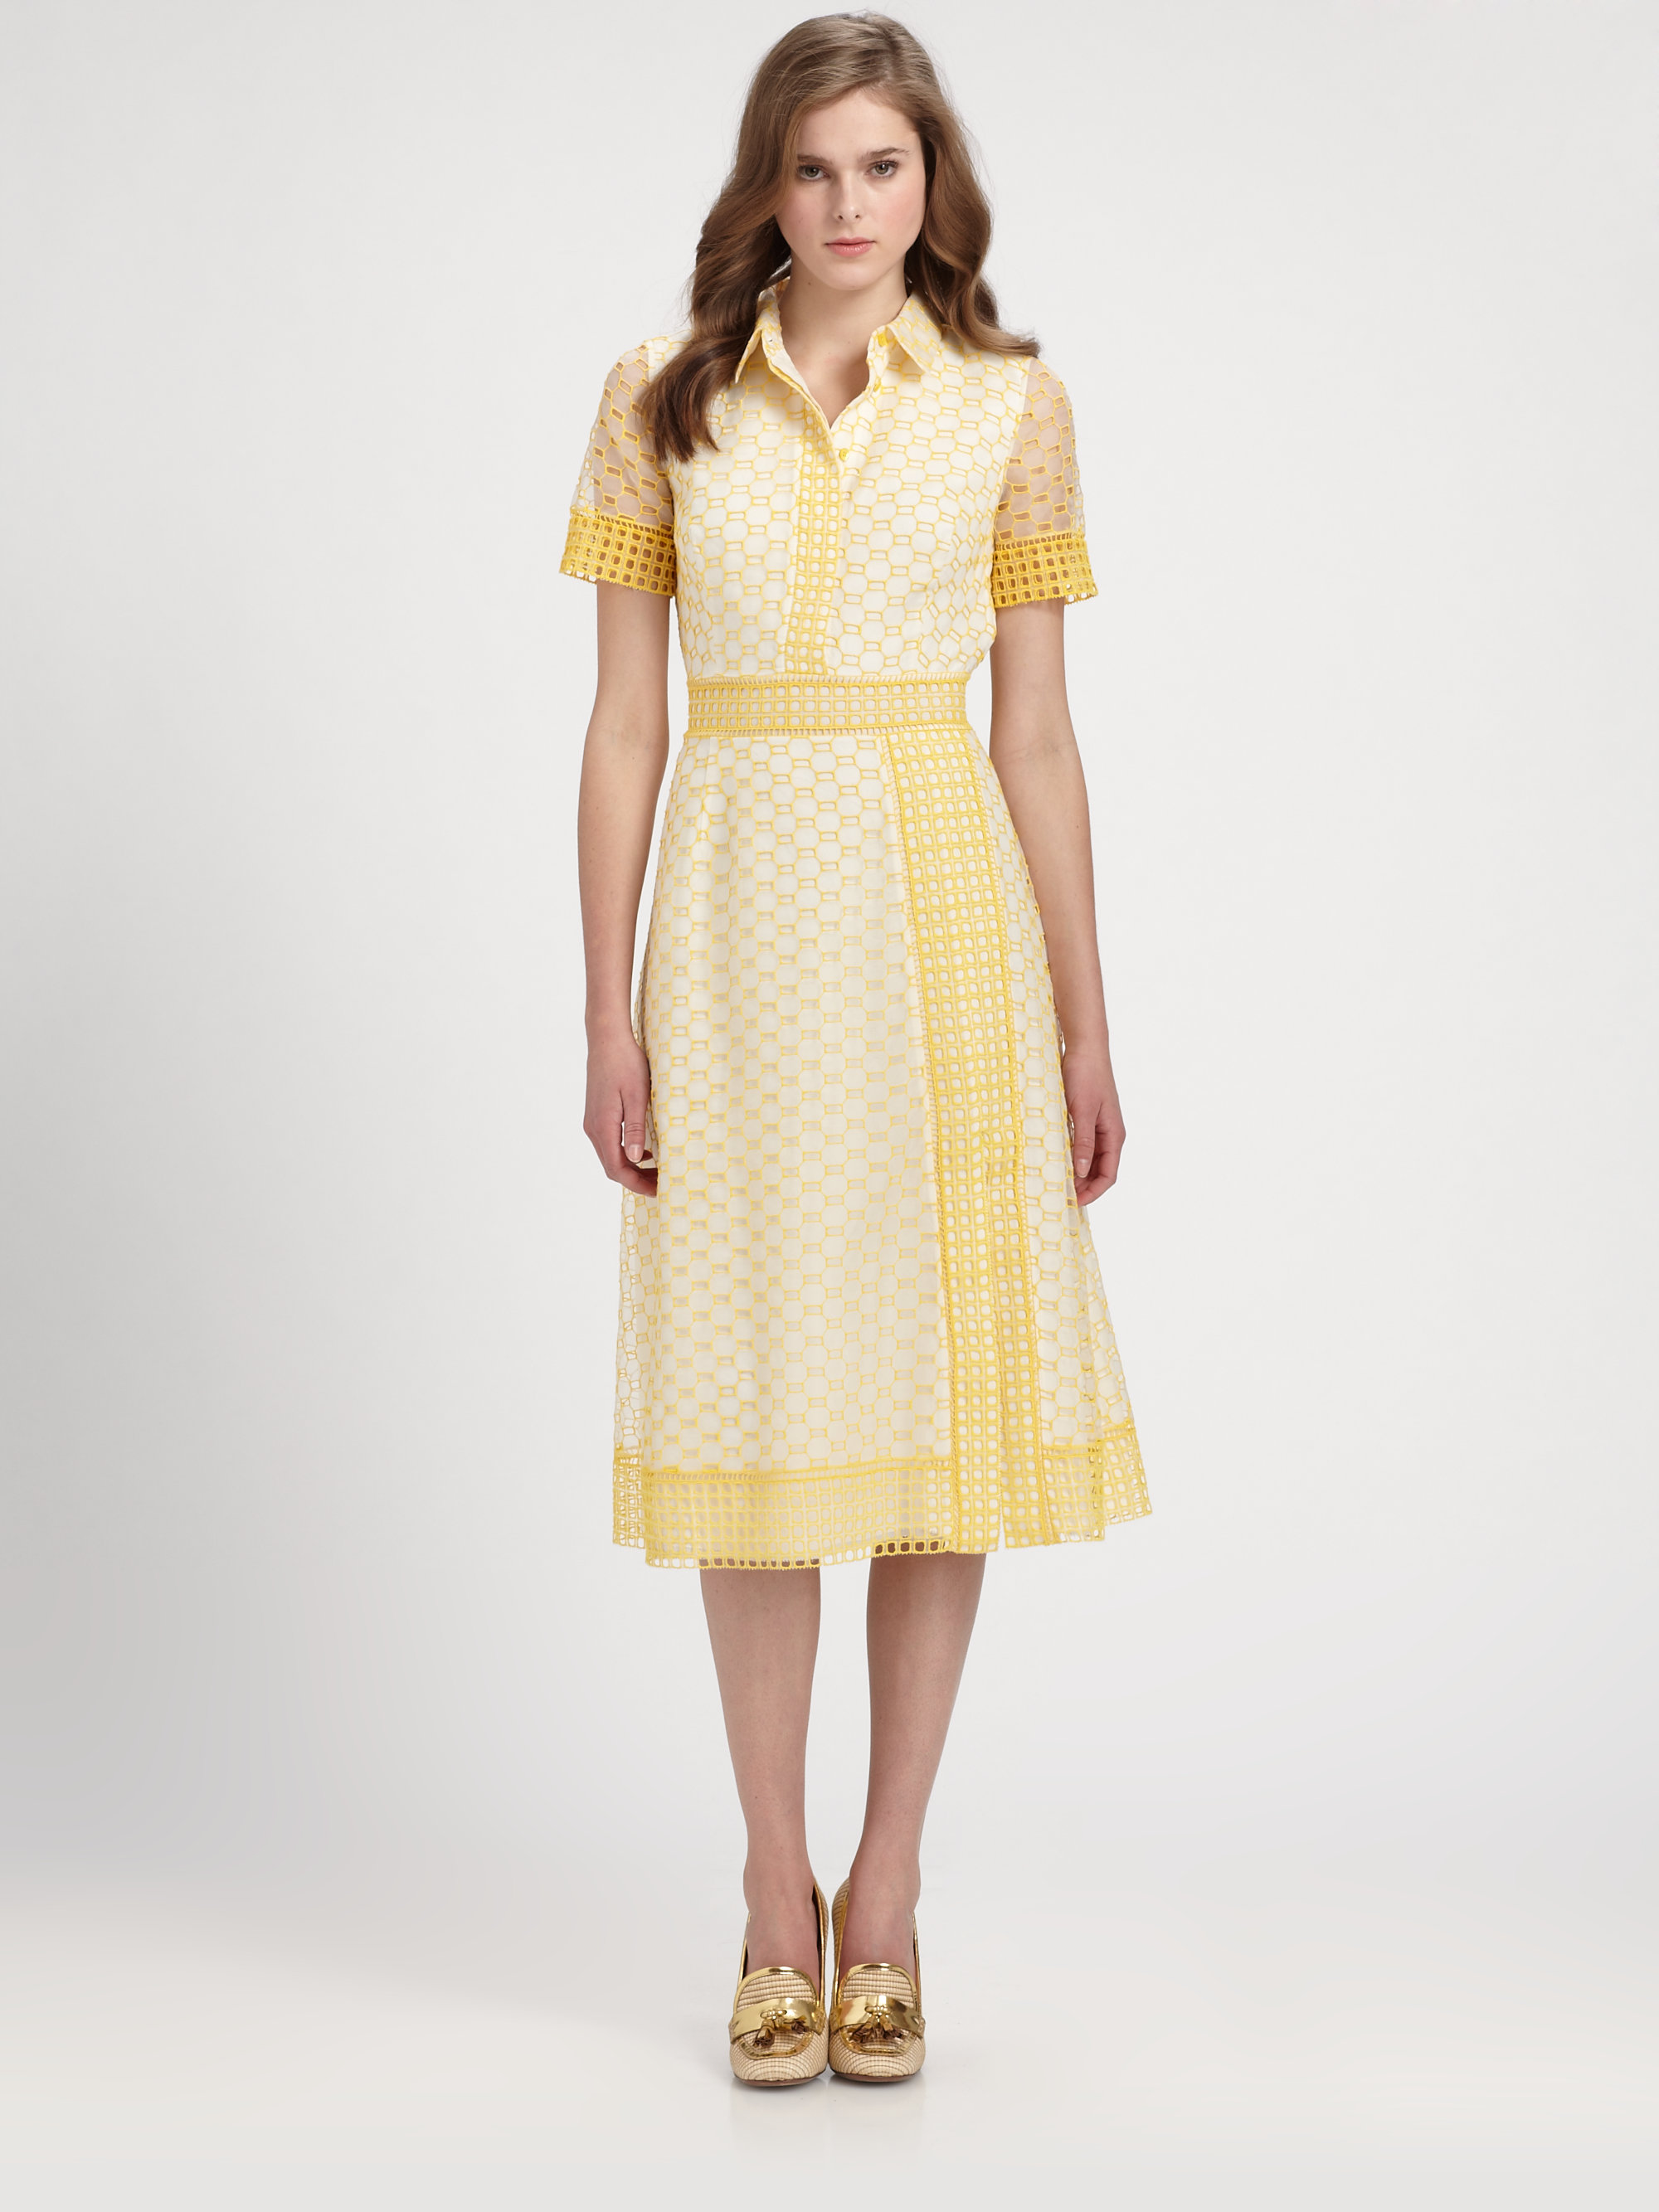 Tory burch isidor dress in yellow lyst for Tory burch fashion island